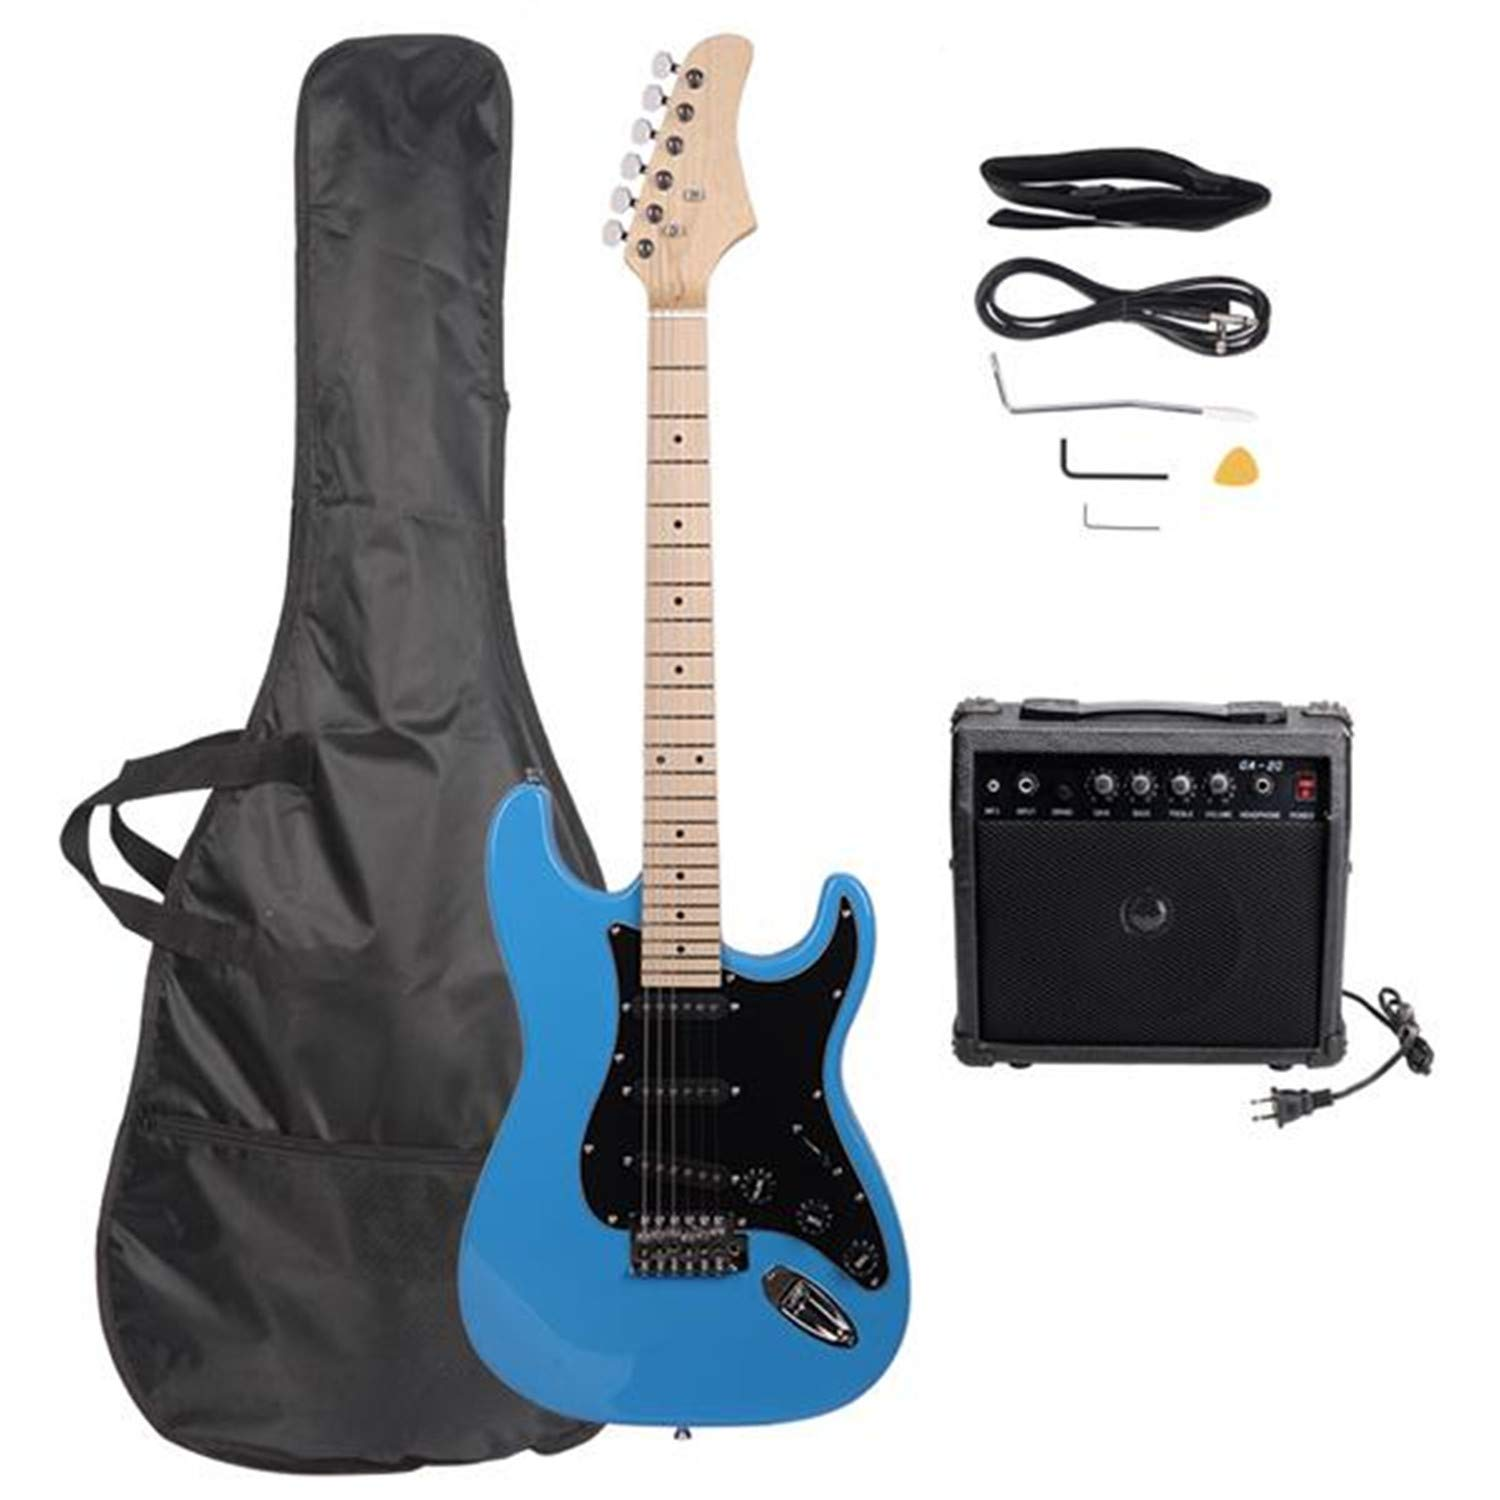 Cheap Full Size Electric Guitar With Black Pickguard For Music Lover Beginner Kits With Bag Strap Guitar Amplifier Power Wire Tool Plectrum (Sky Blue) Black Friday & Cyber Monday 2019